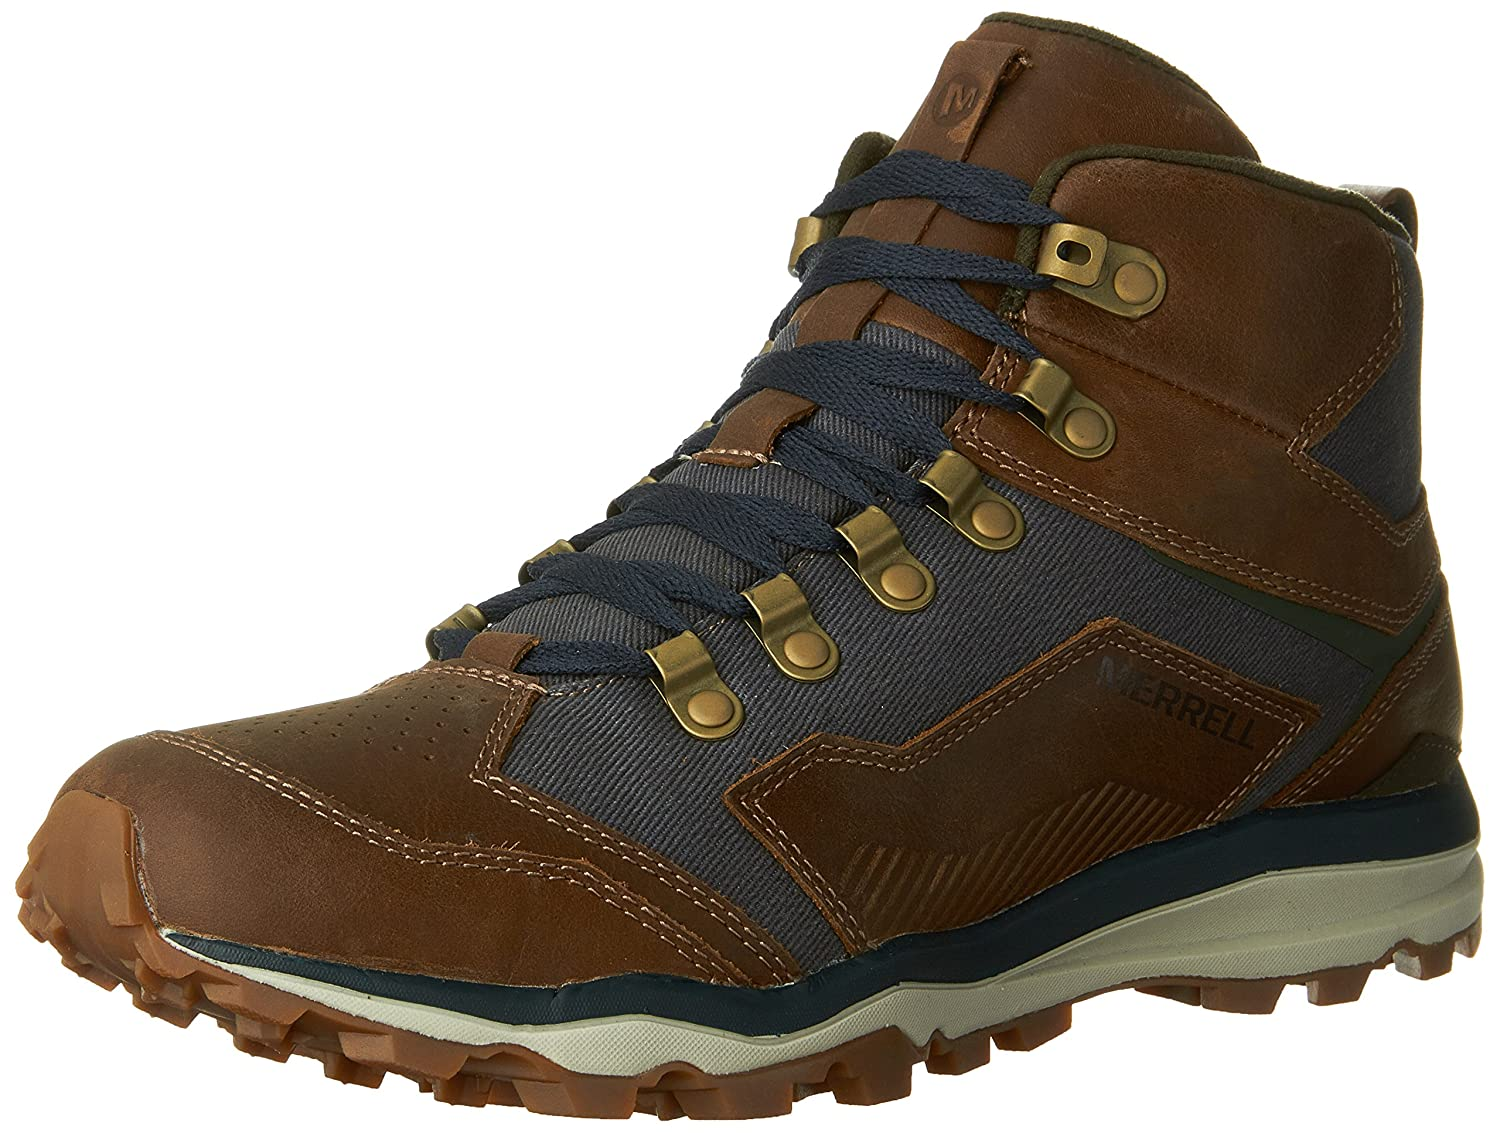 Merrell All Out Crusher Mid Schuhes Men Rosin 2016 Schuhe